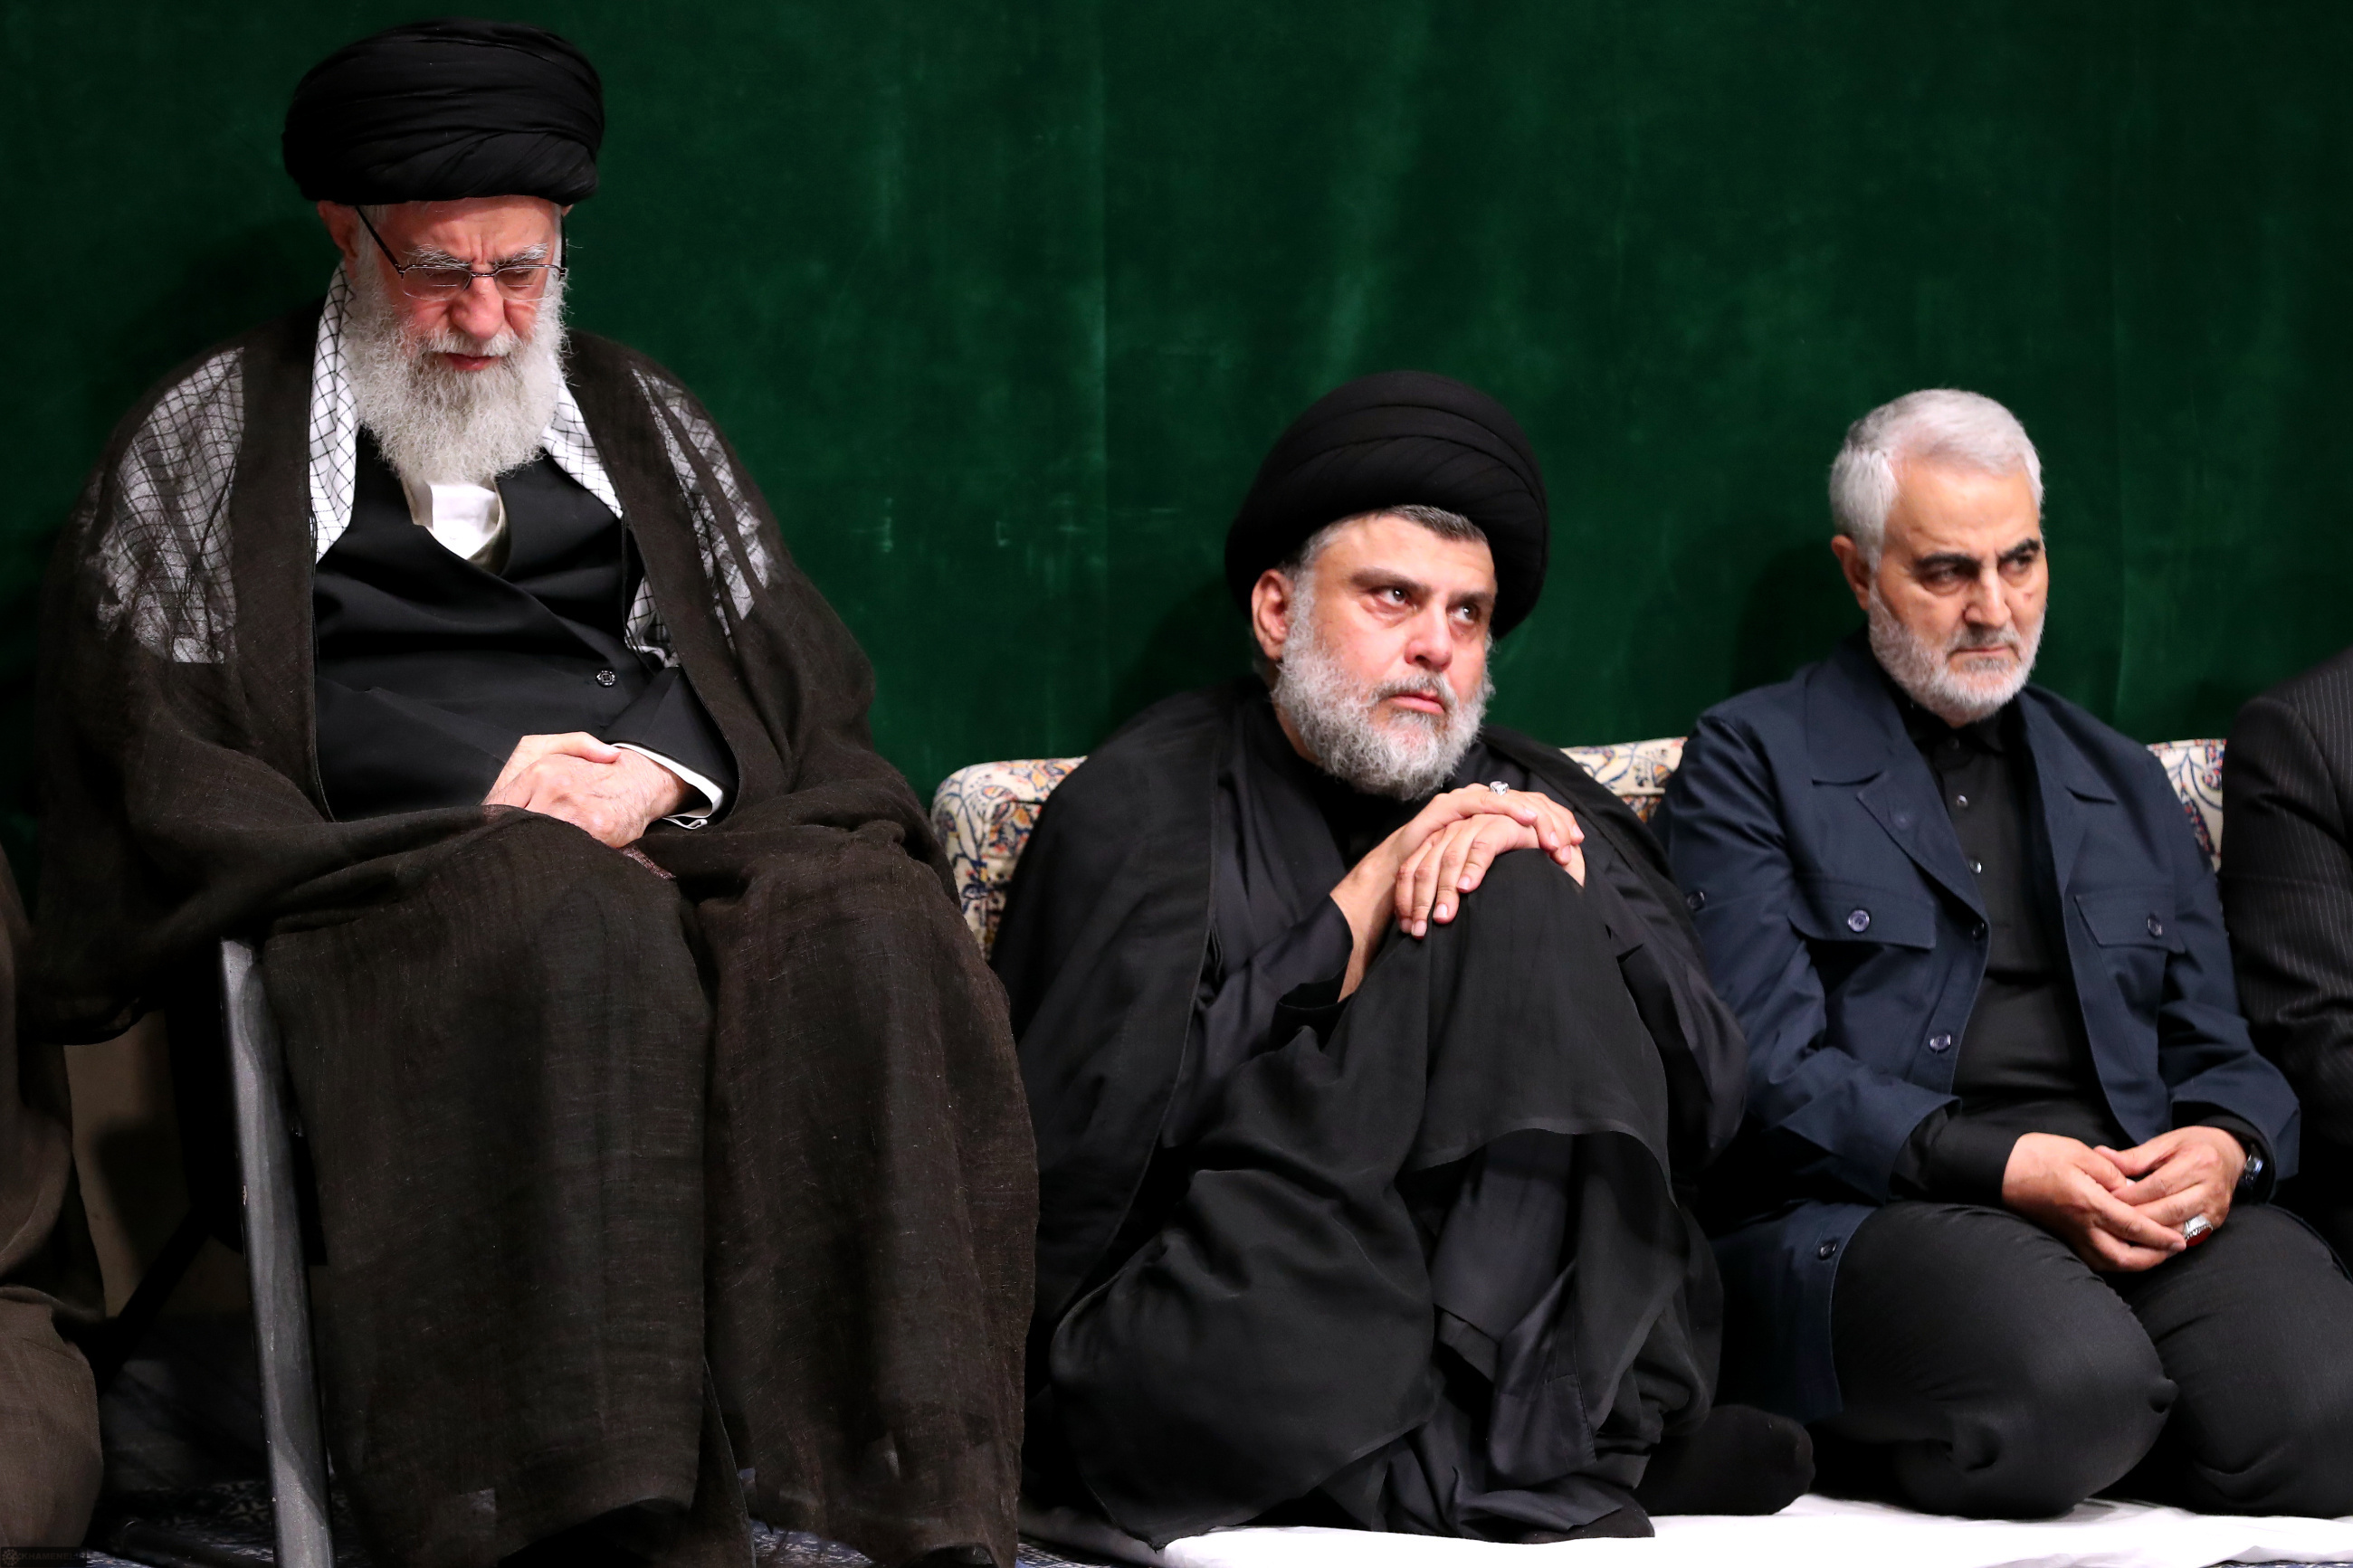 Khamenei, Sadr and Soleimani